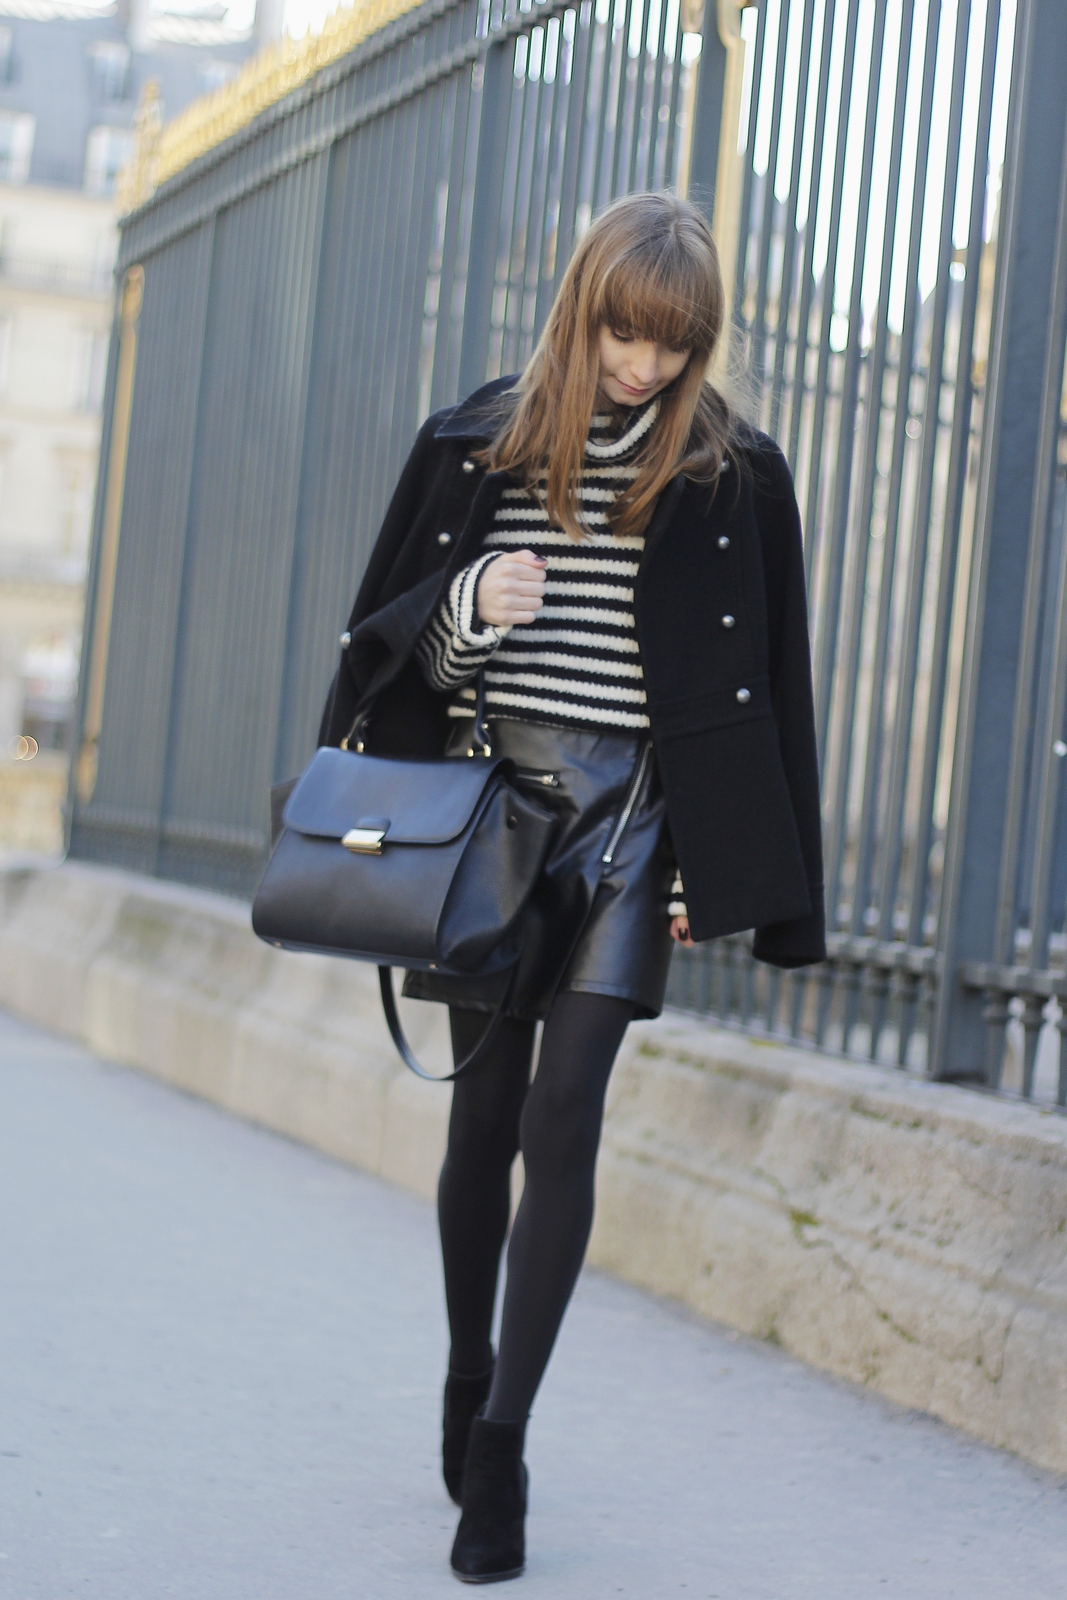 Blog mode femme Paris - Du style, Madame - Streetstyle - stripes